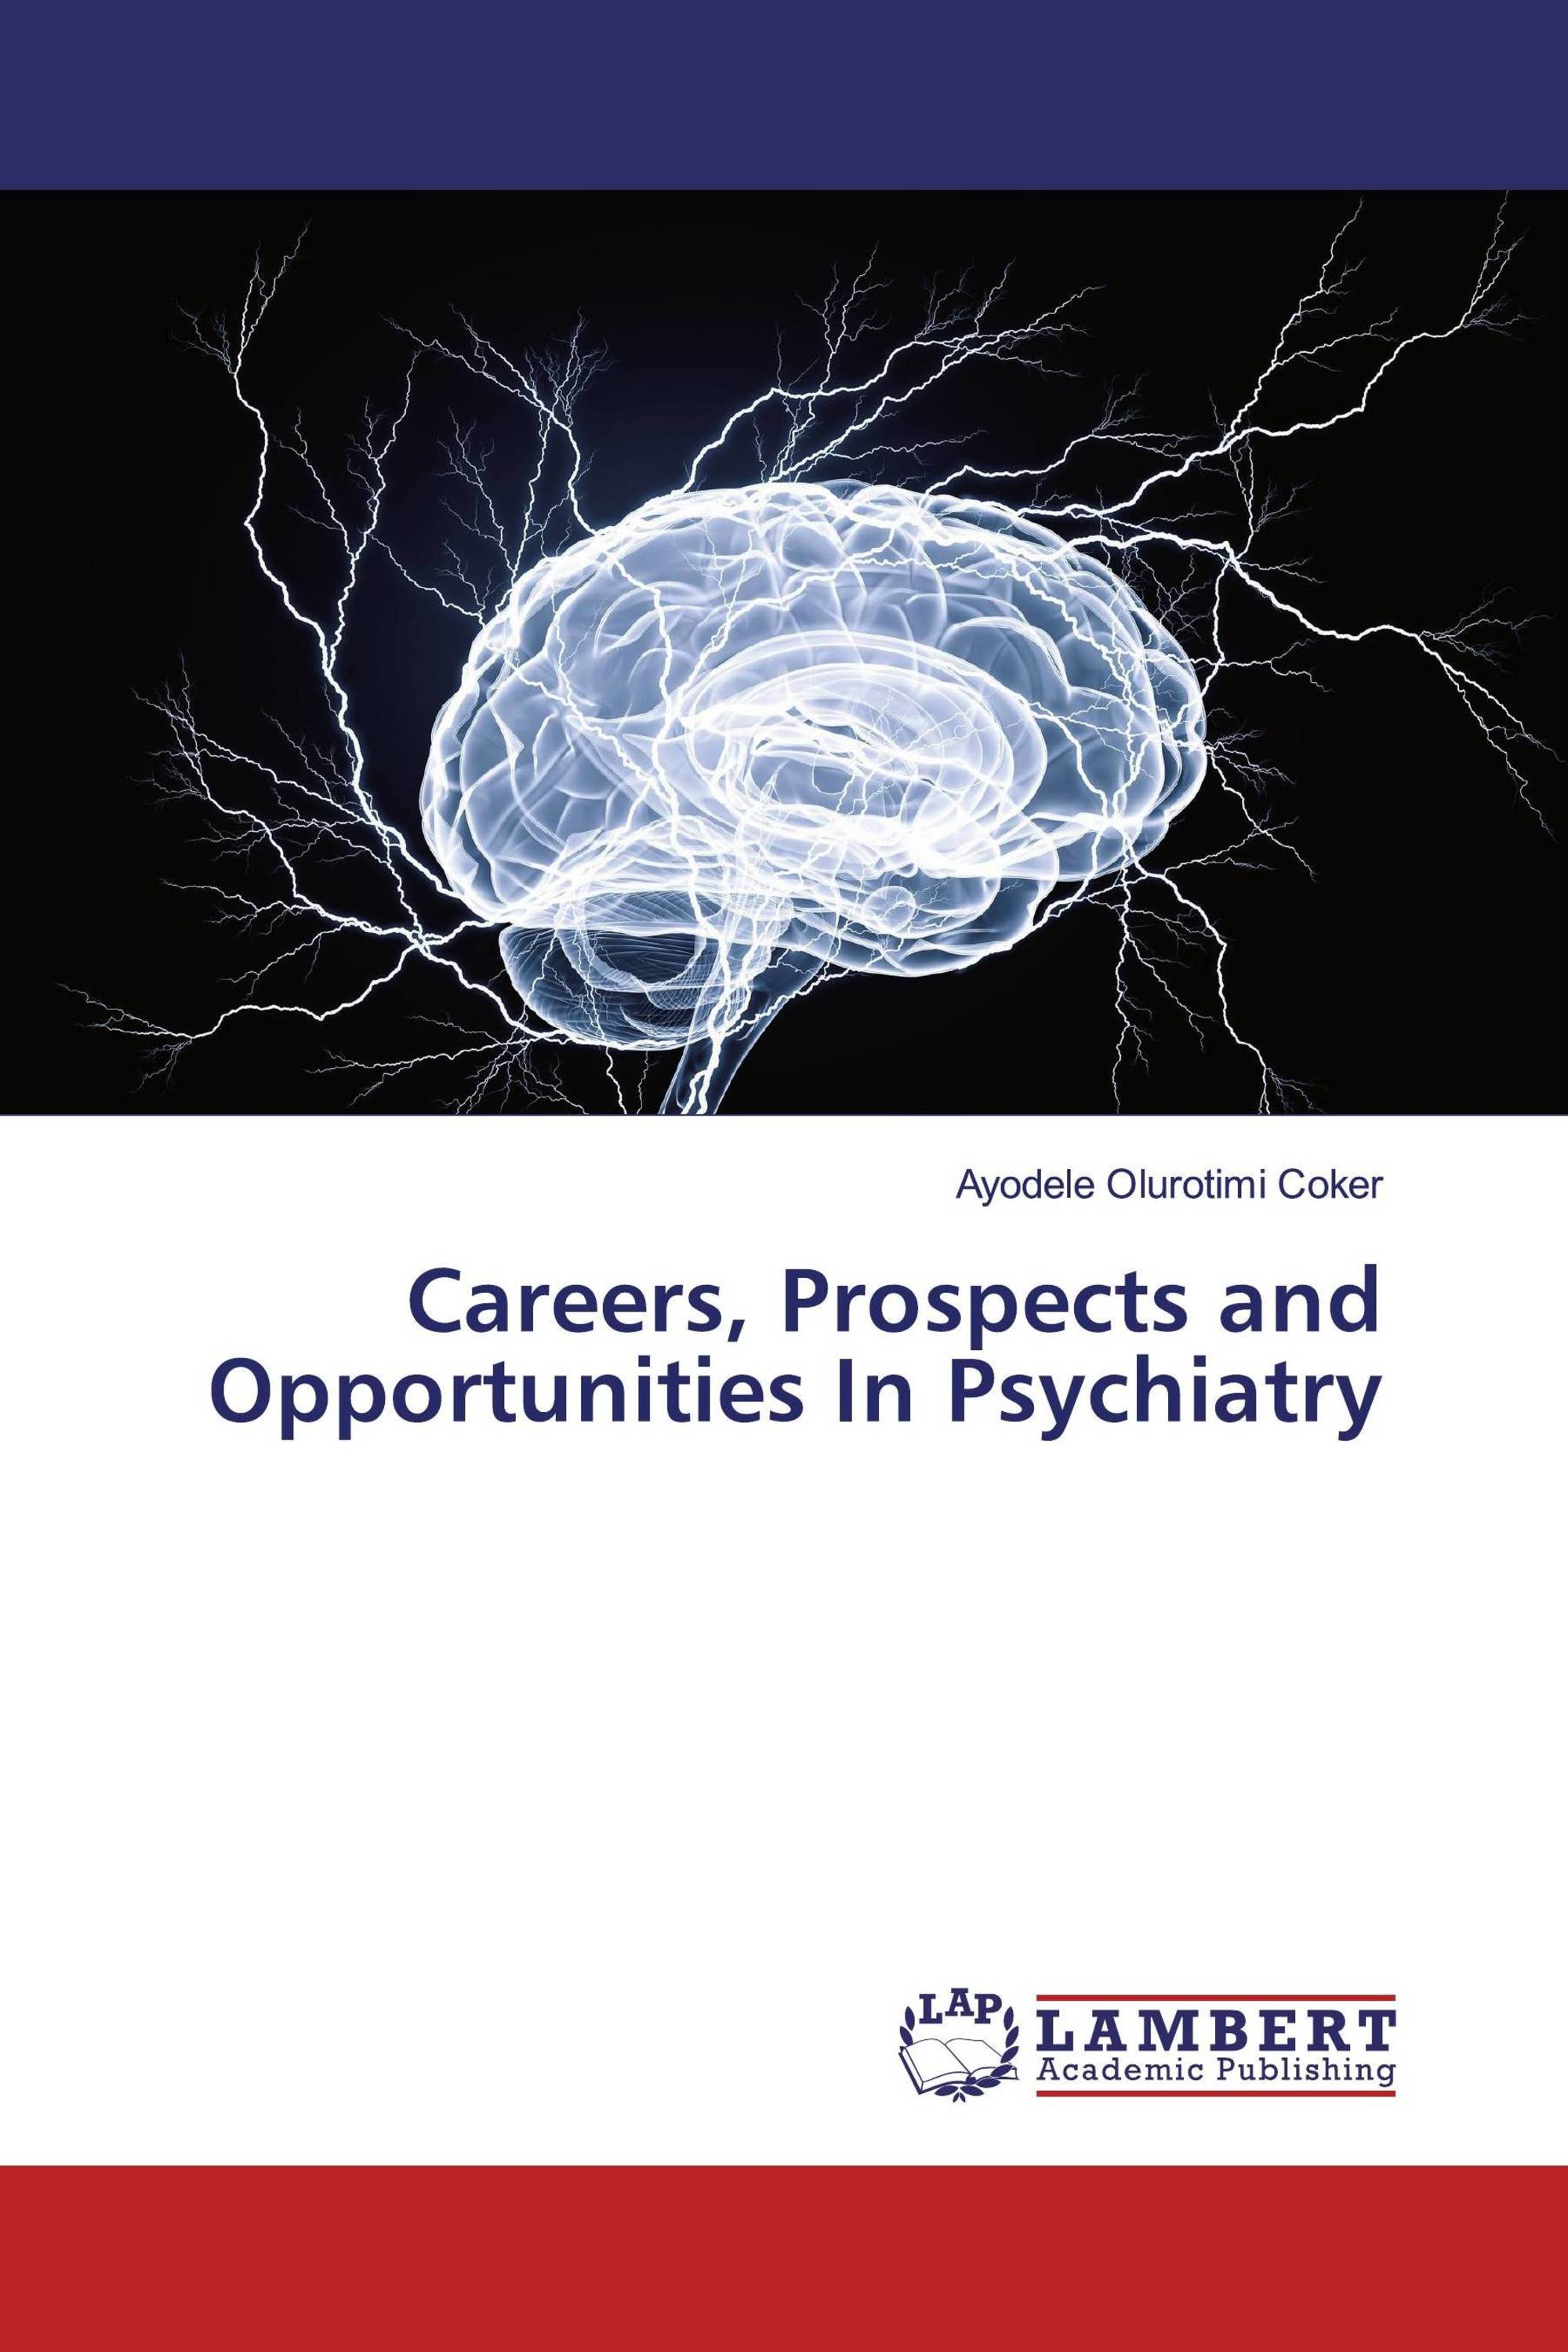 Careers, Prospects and Opportunities In Psychiatry